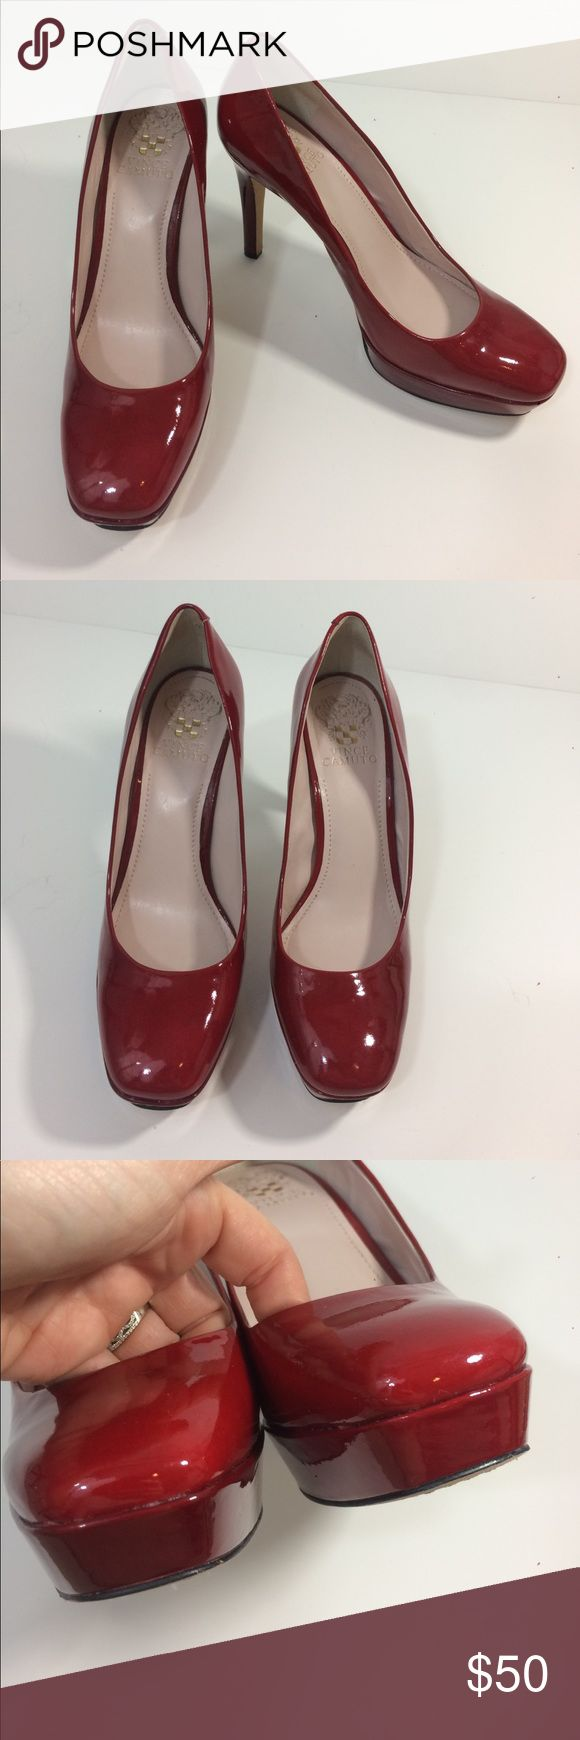 Vince Camuto red heels Vince Camuto red platform heels. In like new condition. No scuffs or marks. Vince Camuto Shoes Platforms